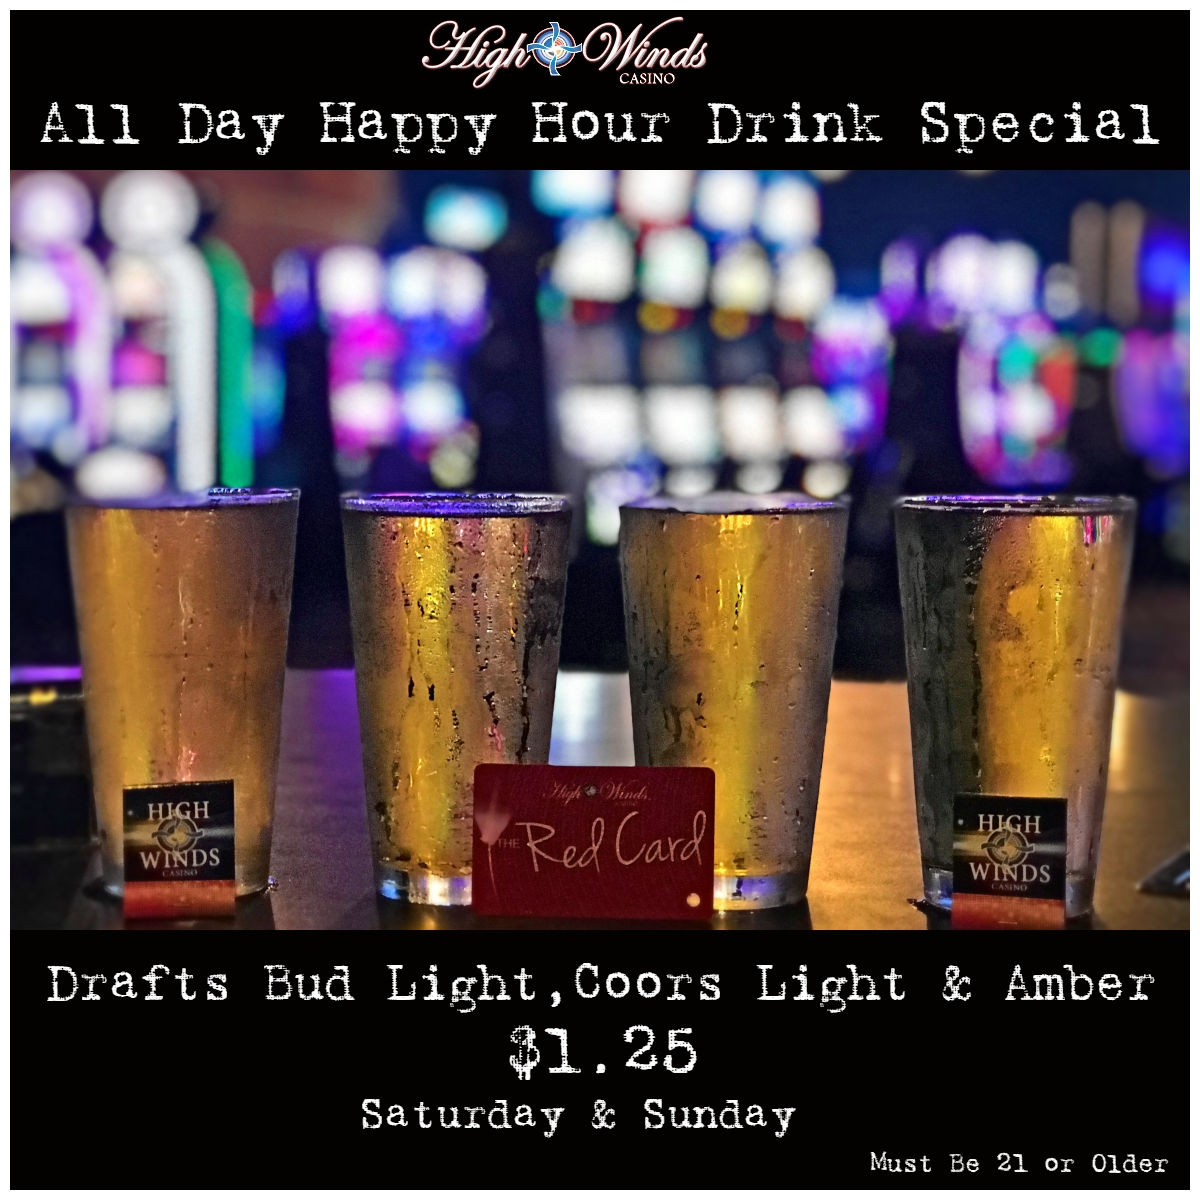 Draft Bud Light, Coors Light and Amber for $1.25.